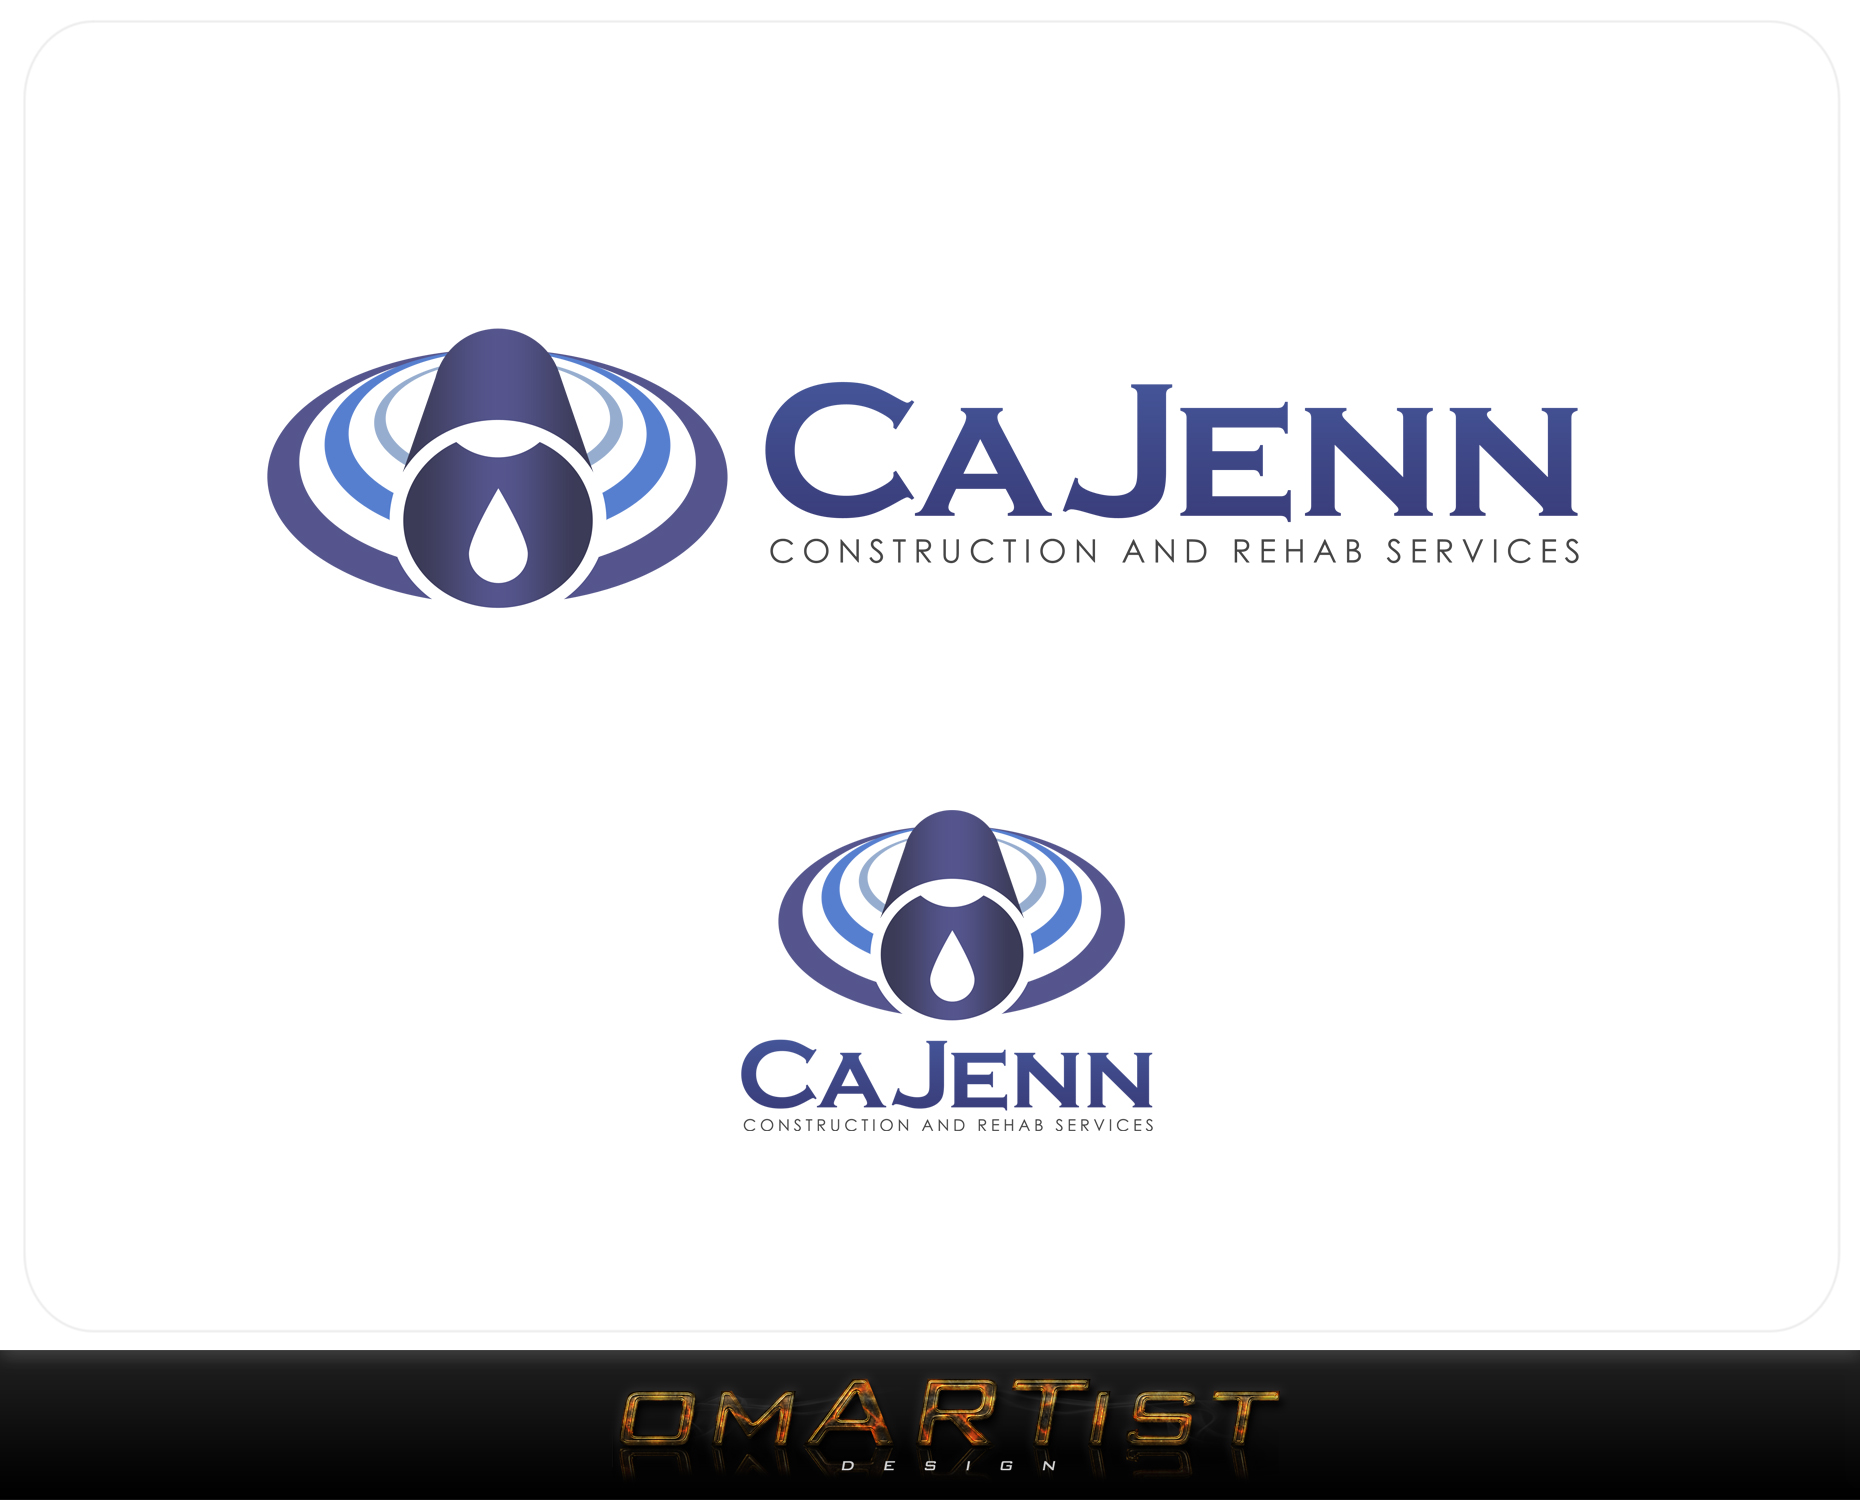 Logo Design by omARTist - Entry No. 285 in the Logo Design Contest New Logo Design for CaJenn Construction & Rehab Services.